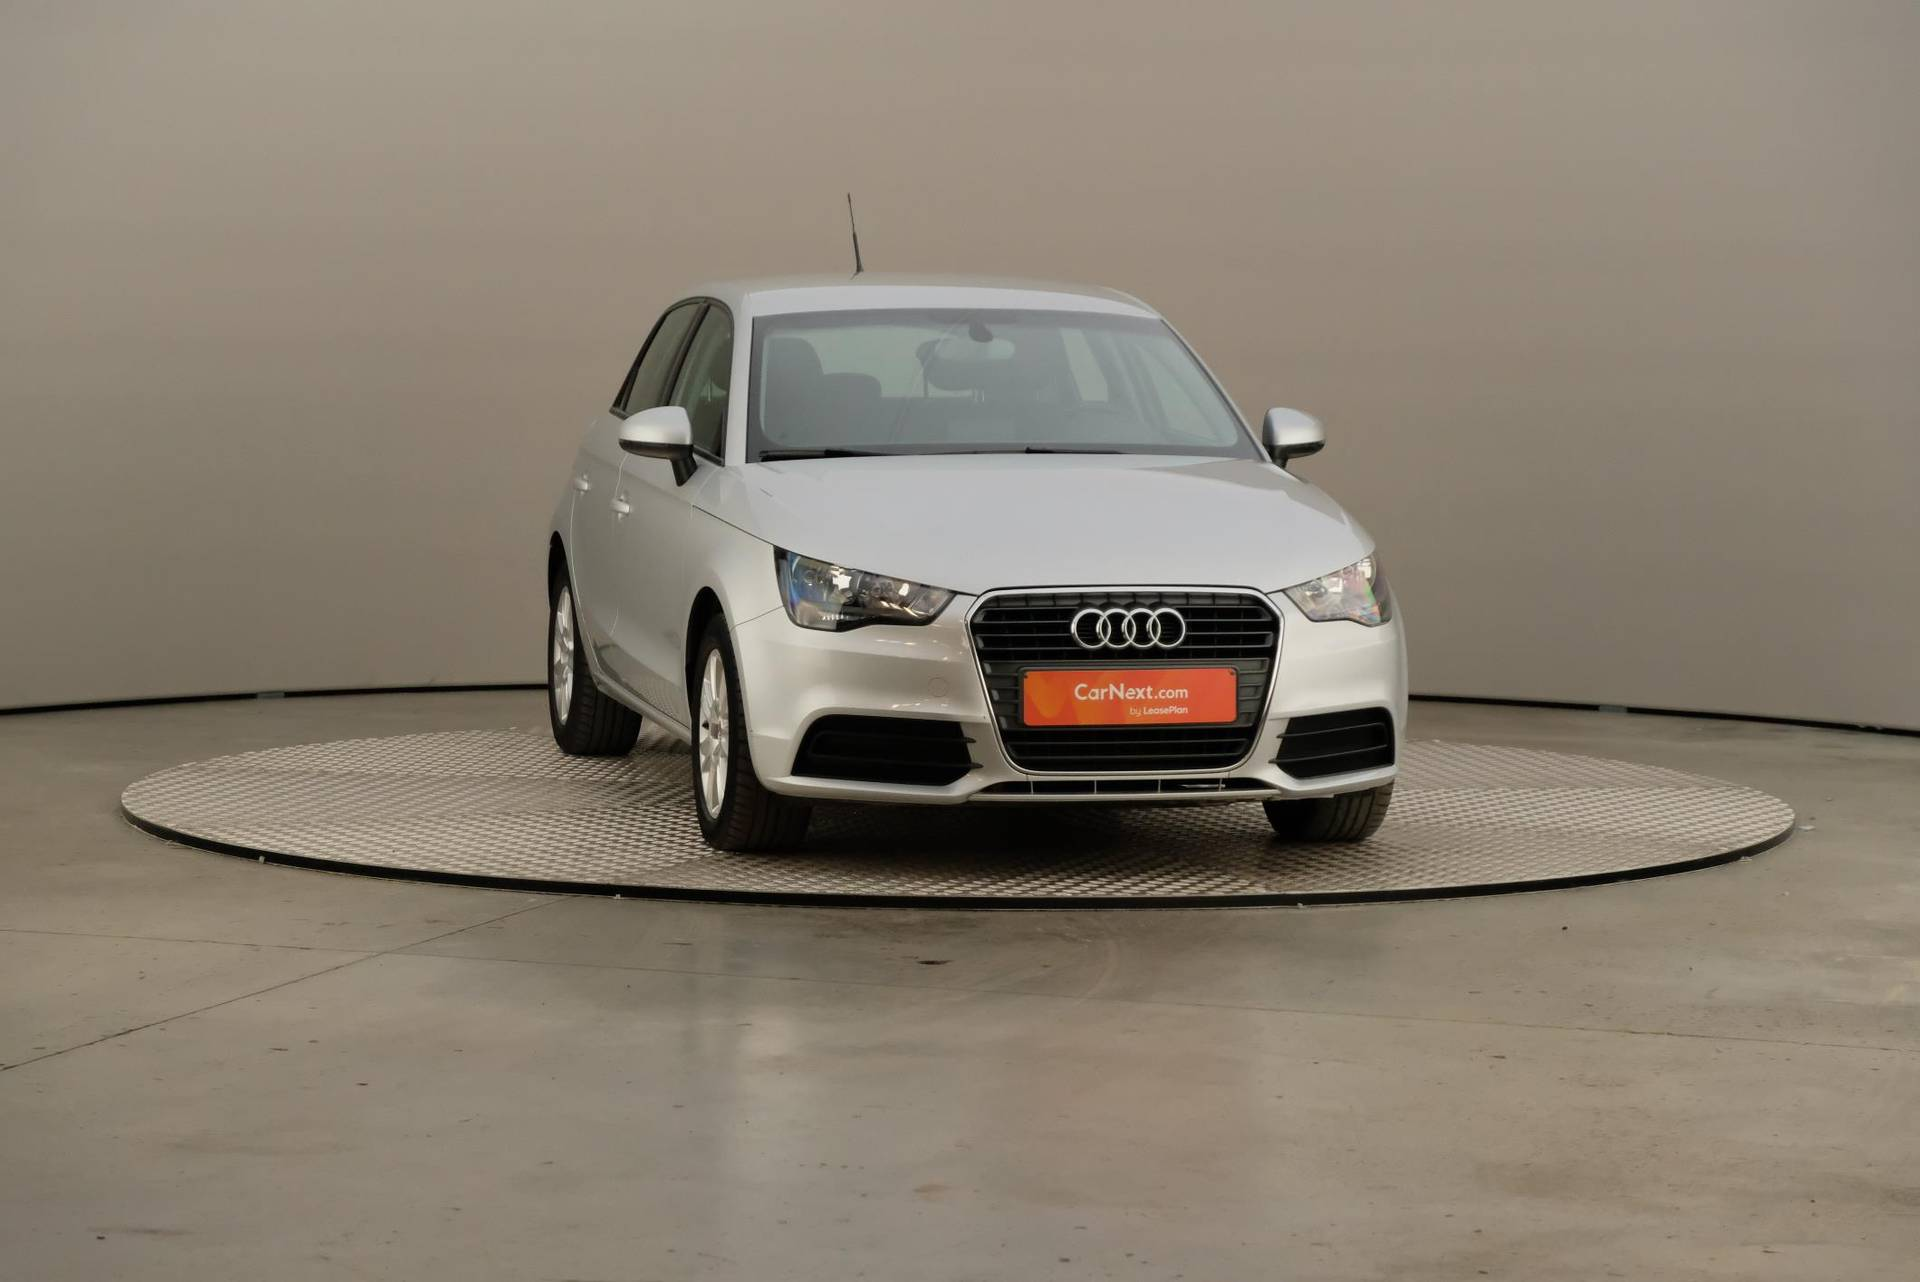 Audi A1 1.6 TDI Sportback, Attraction S&S PDC BT, 360-image30